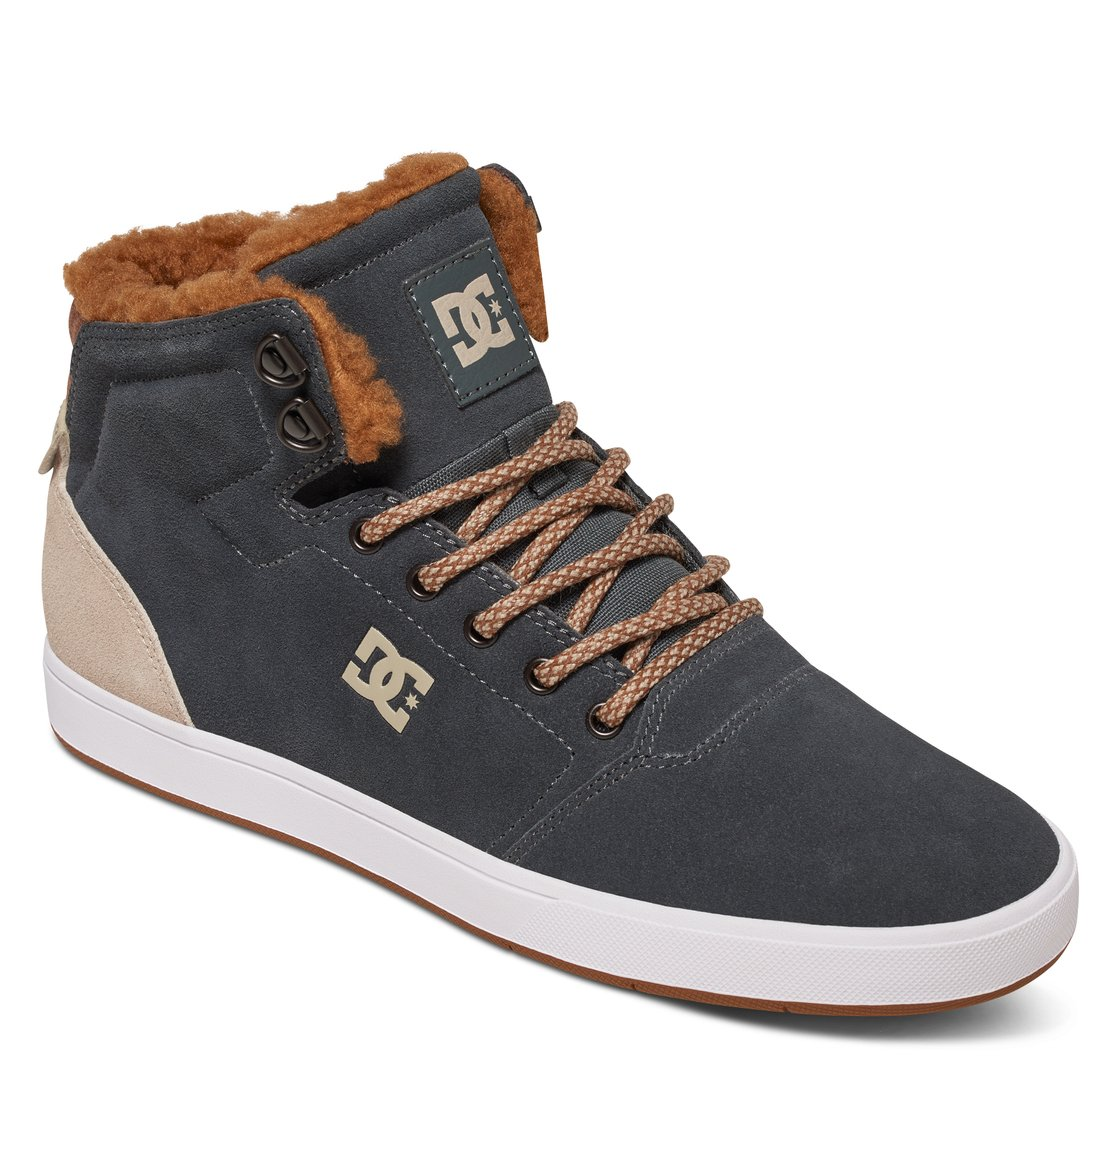 dc shoes crisis wnt chaussure montante cupsole. Black Bedroom Furniture Sets. Home Design Ideas